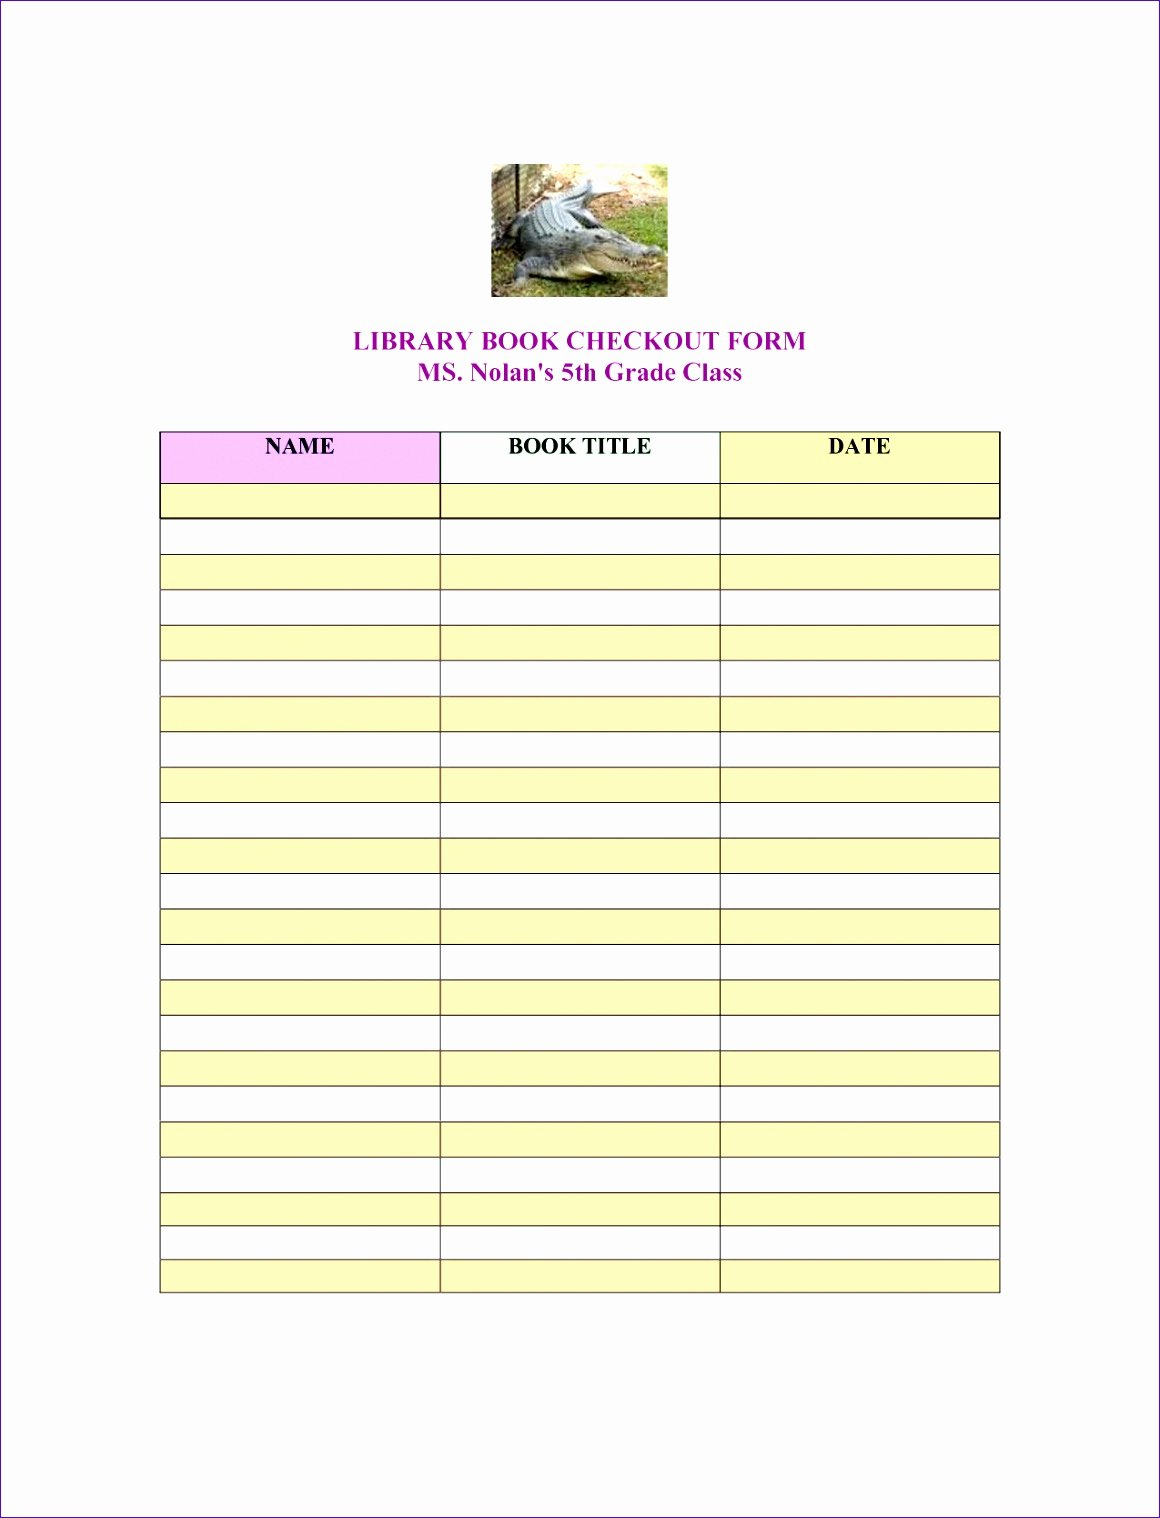 Library Checkout Cards Template Luxury Library Book Checkout Sheet Haojc Ideas Best S